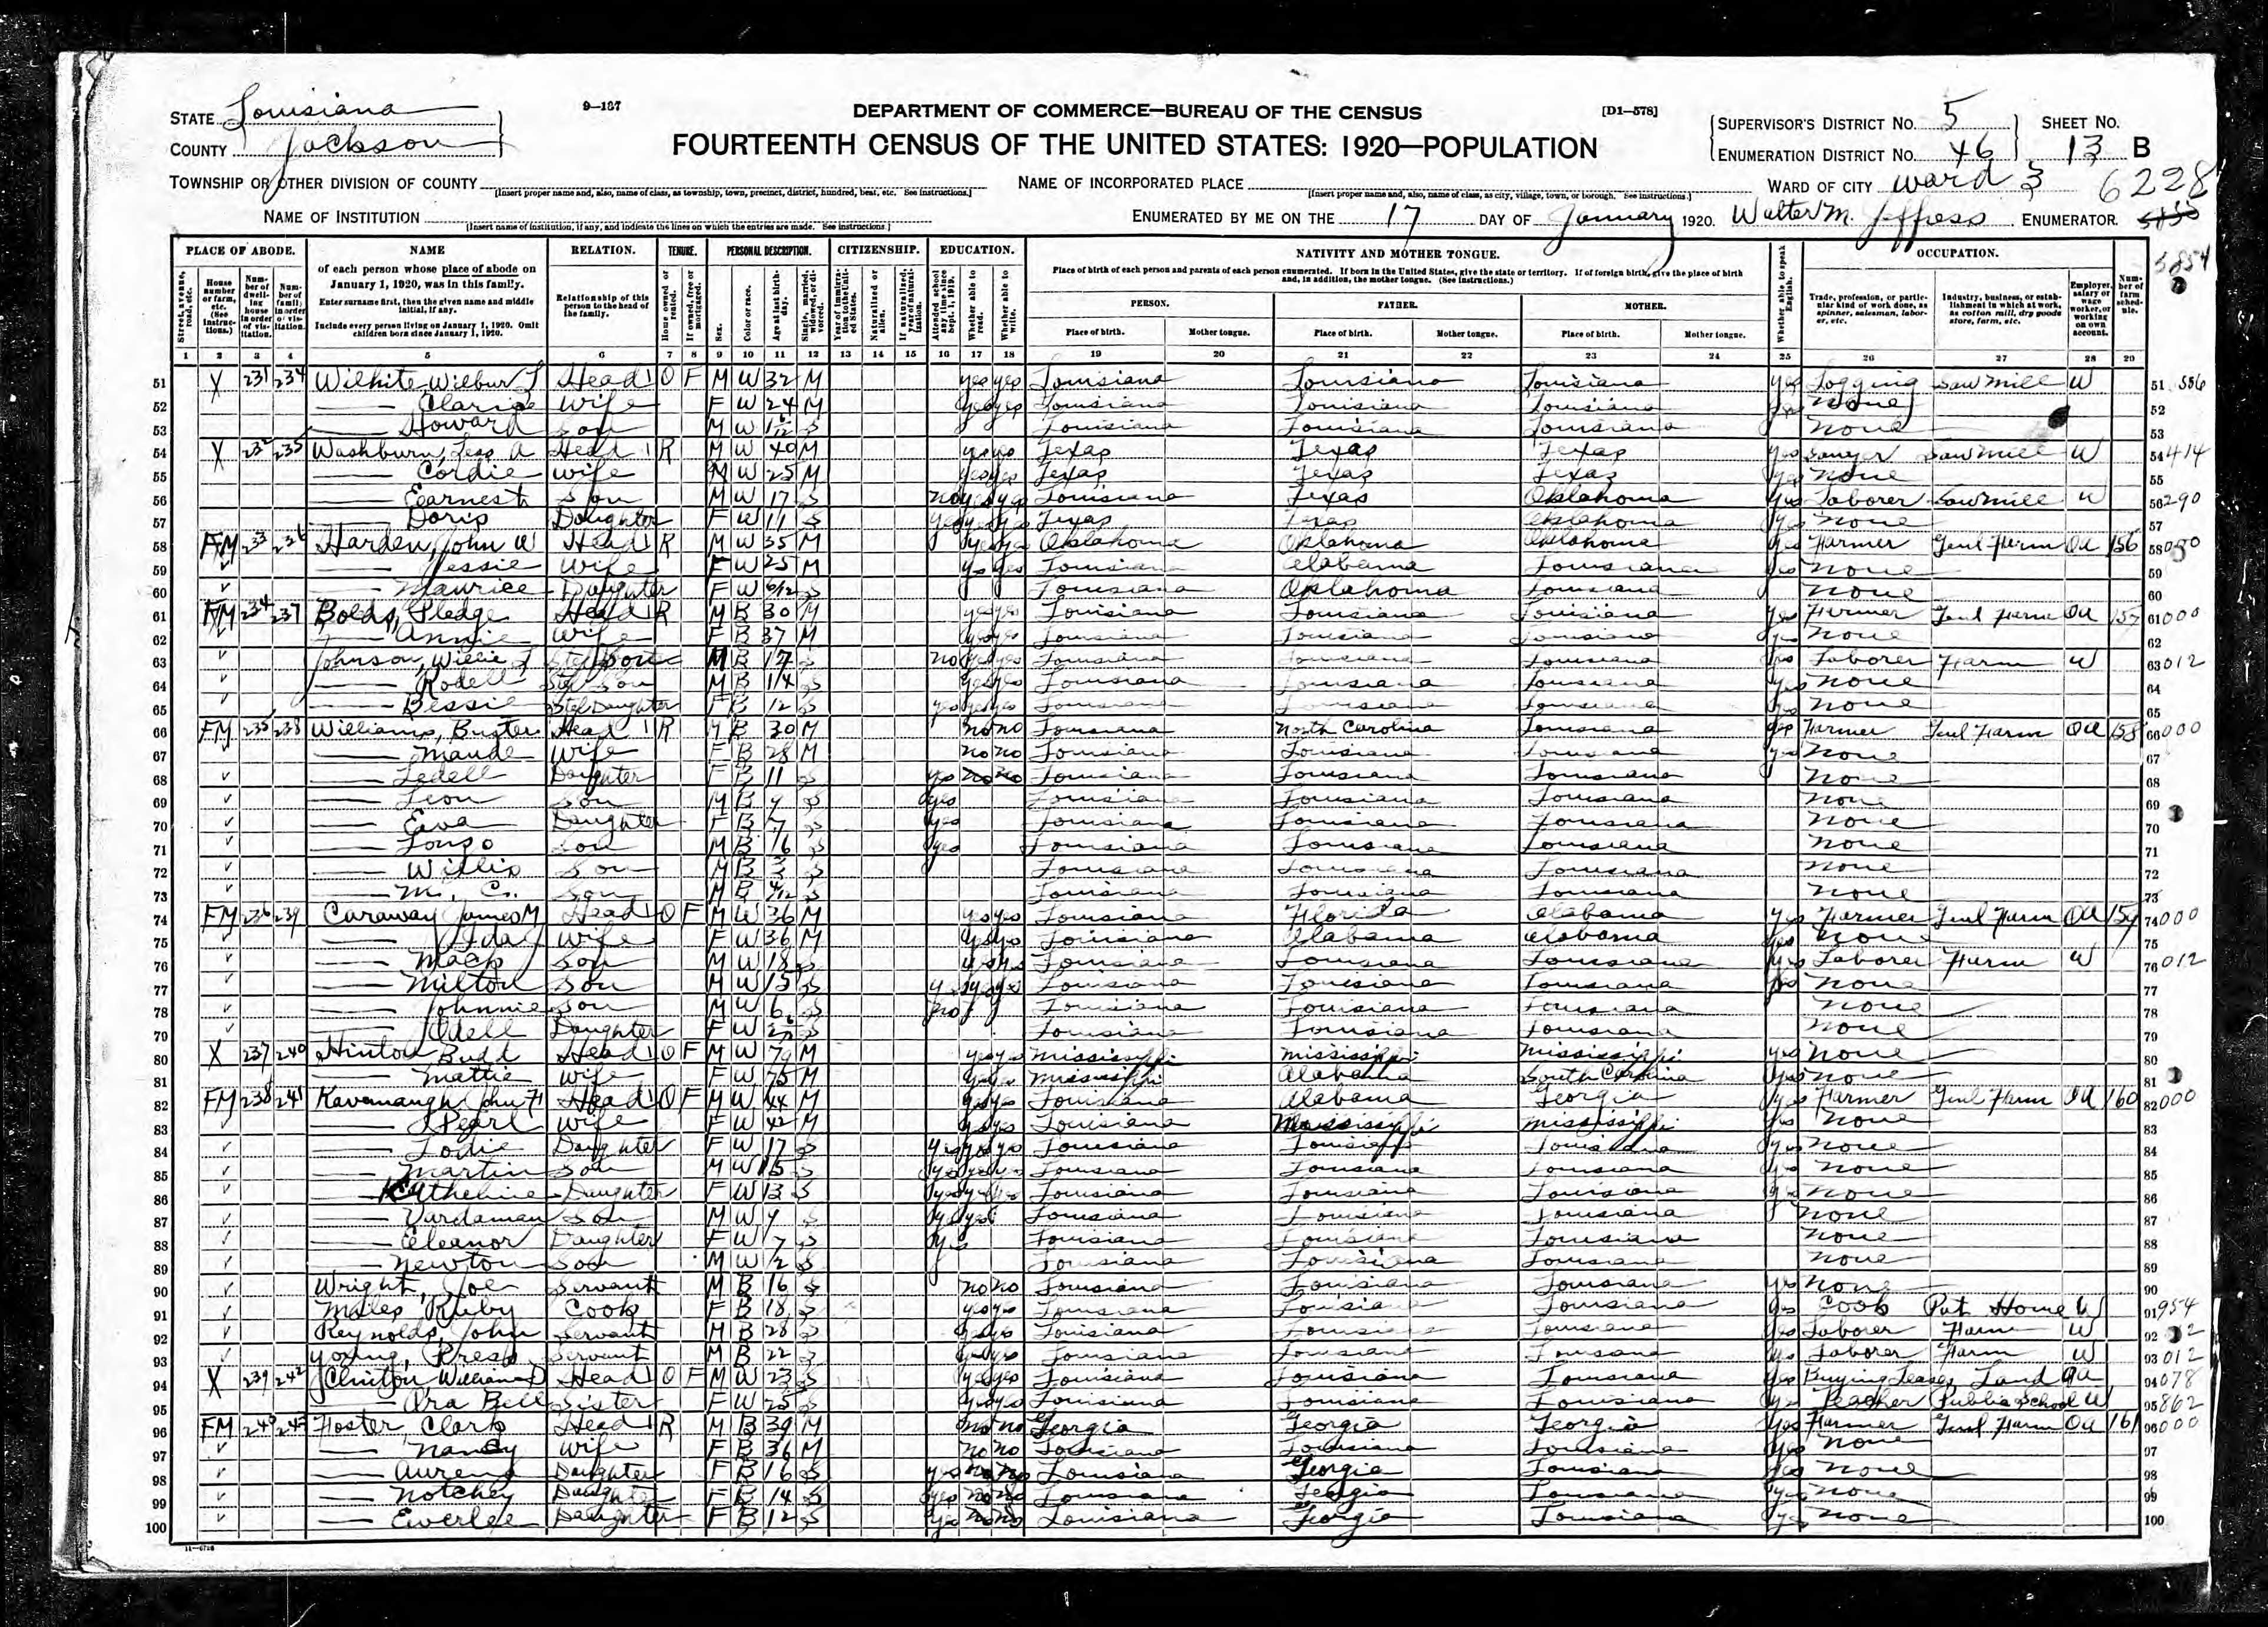 William Jackson Stewart Marriages And Children - 1920 us census map for meriweather county georgia